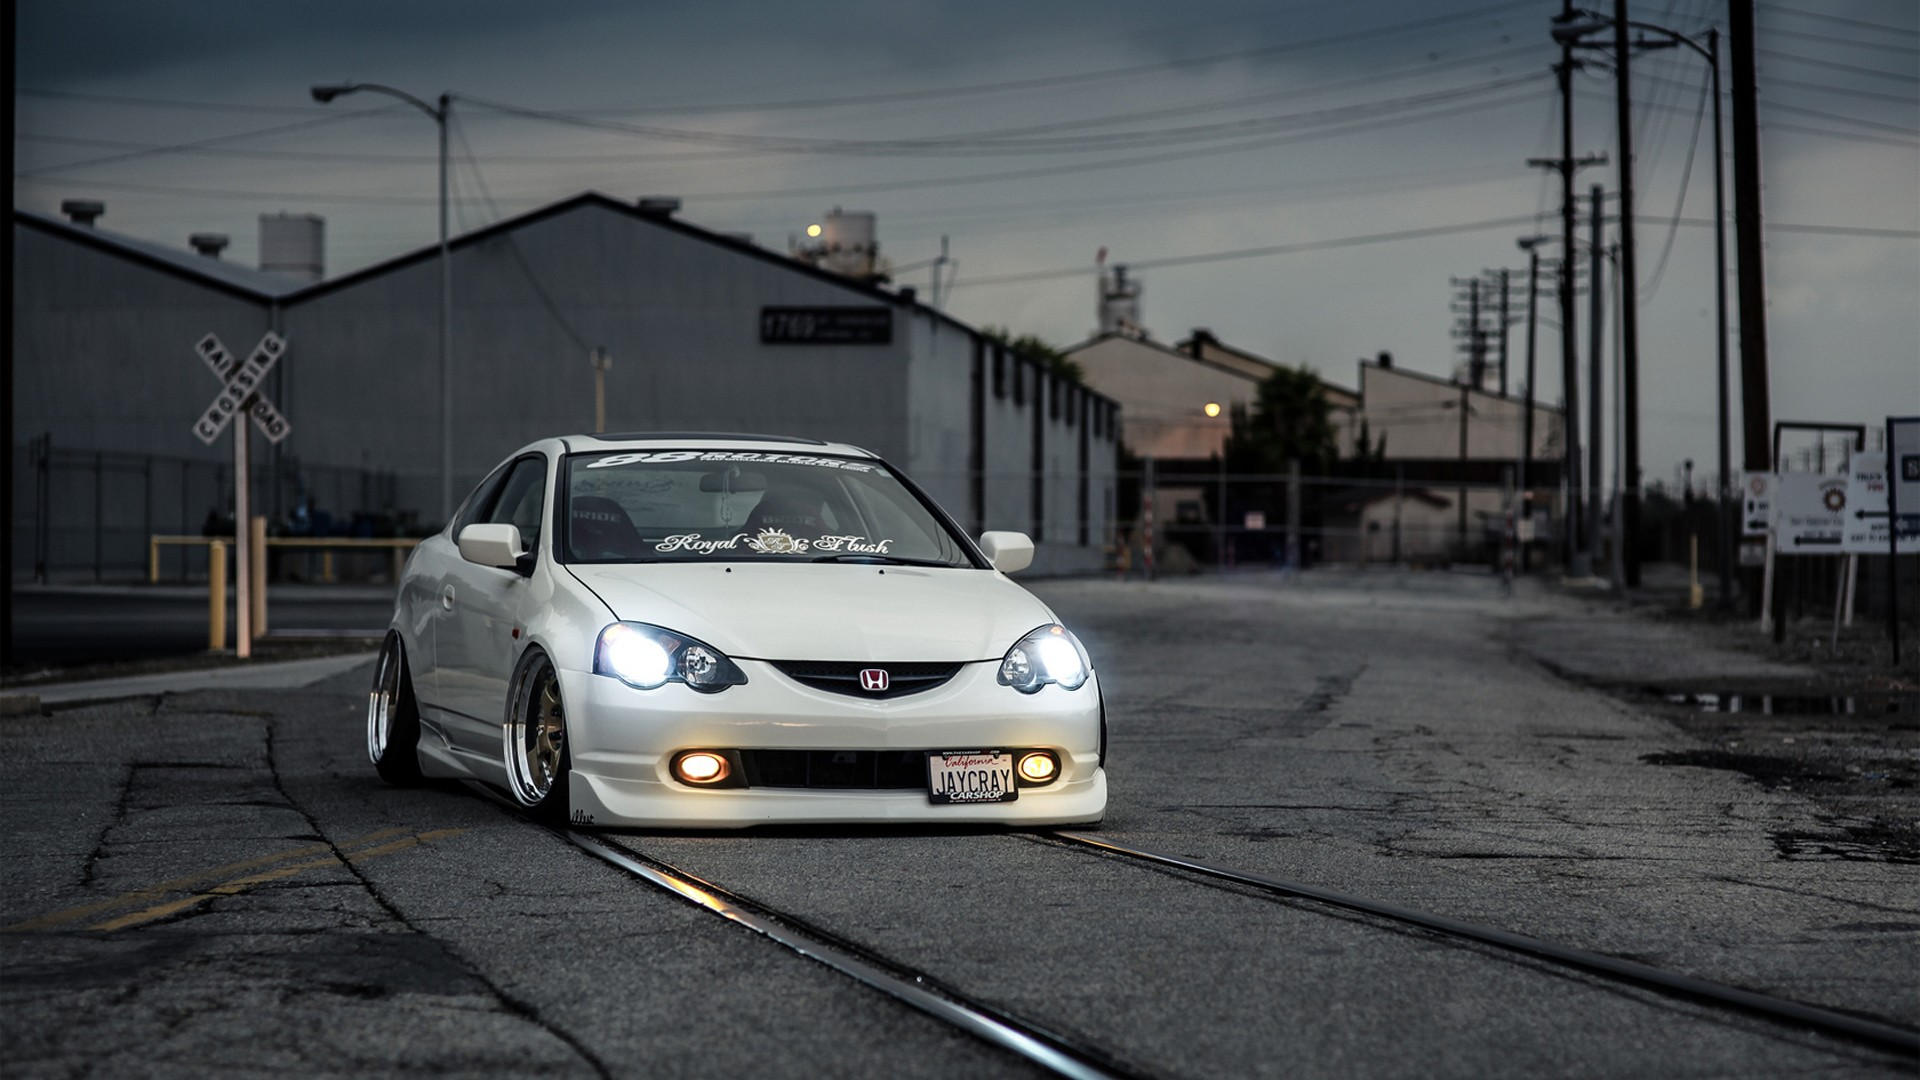 Acura Rsx Type S Wallpaper On Wallpaperget Com